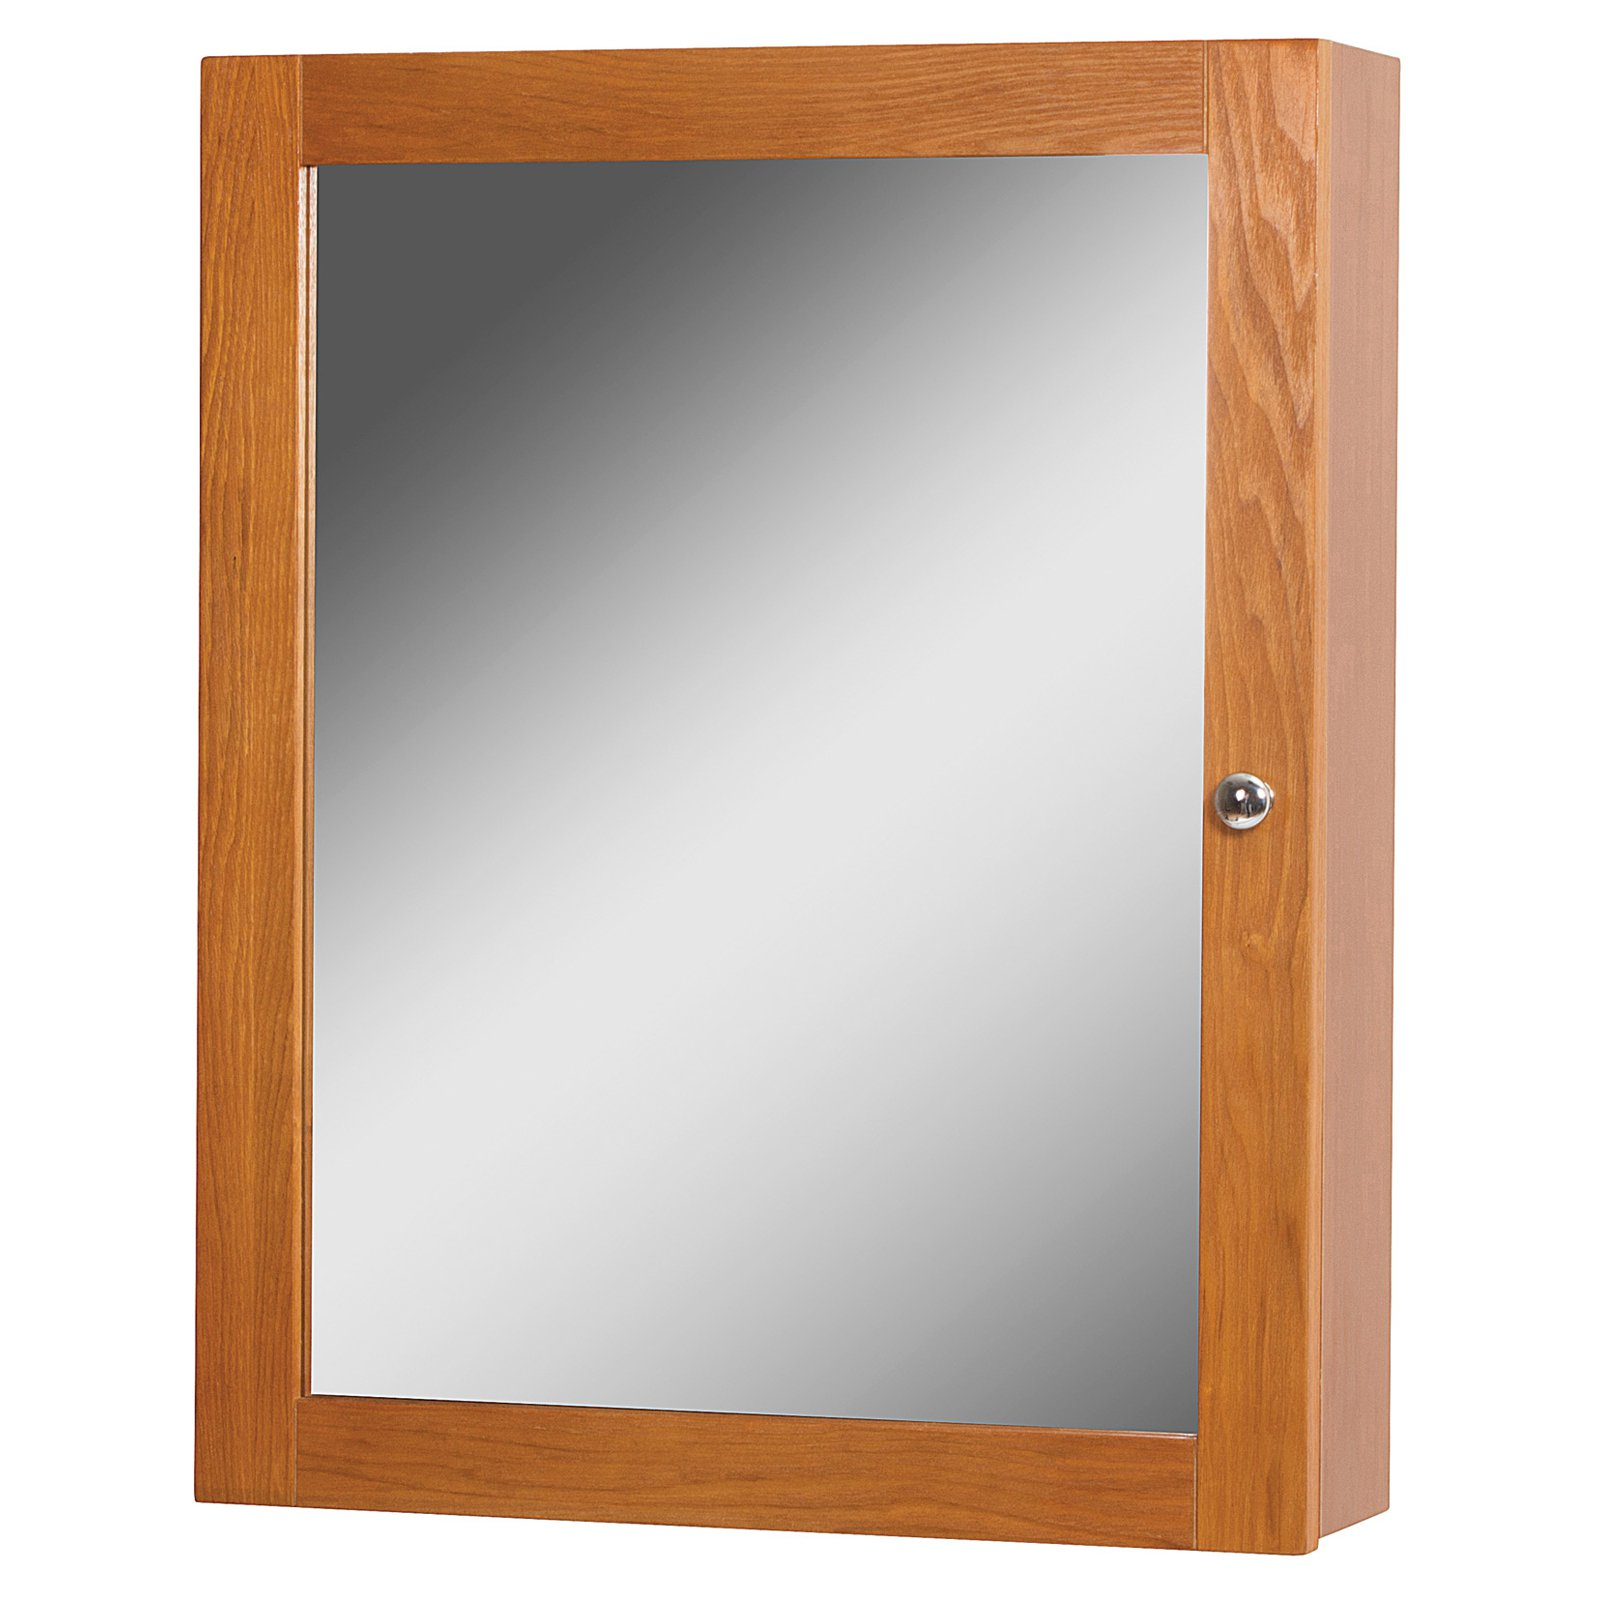 walmart bathroom medicine cabinet foremost worthington bathroom medicine cabinet walmart 21345